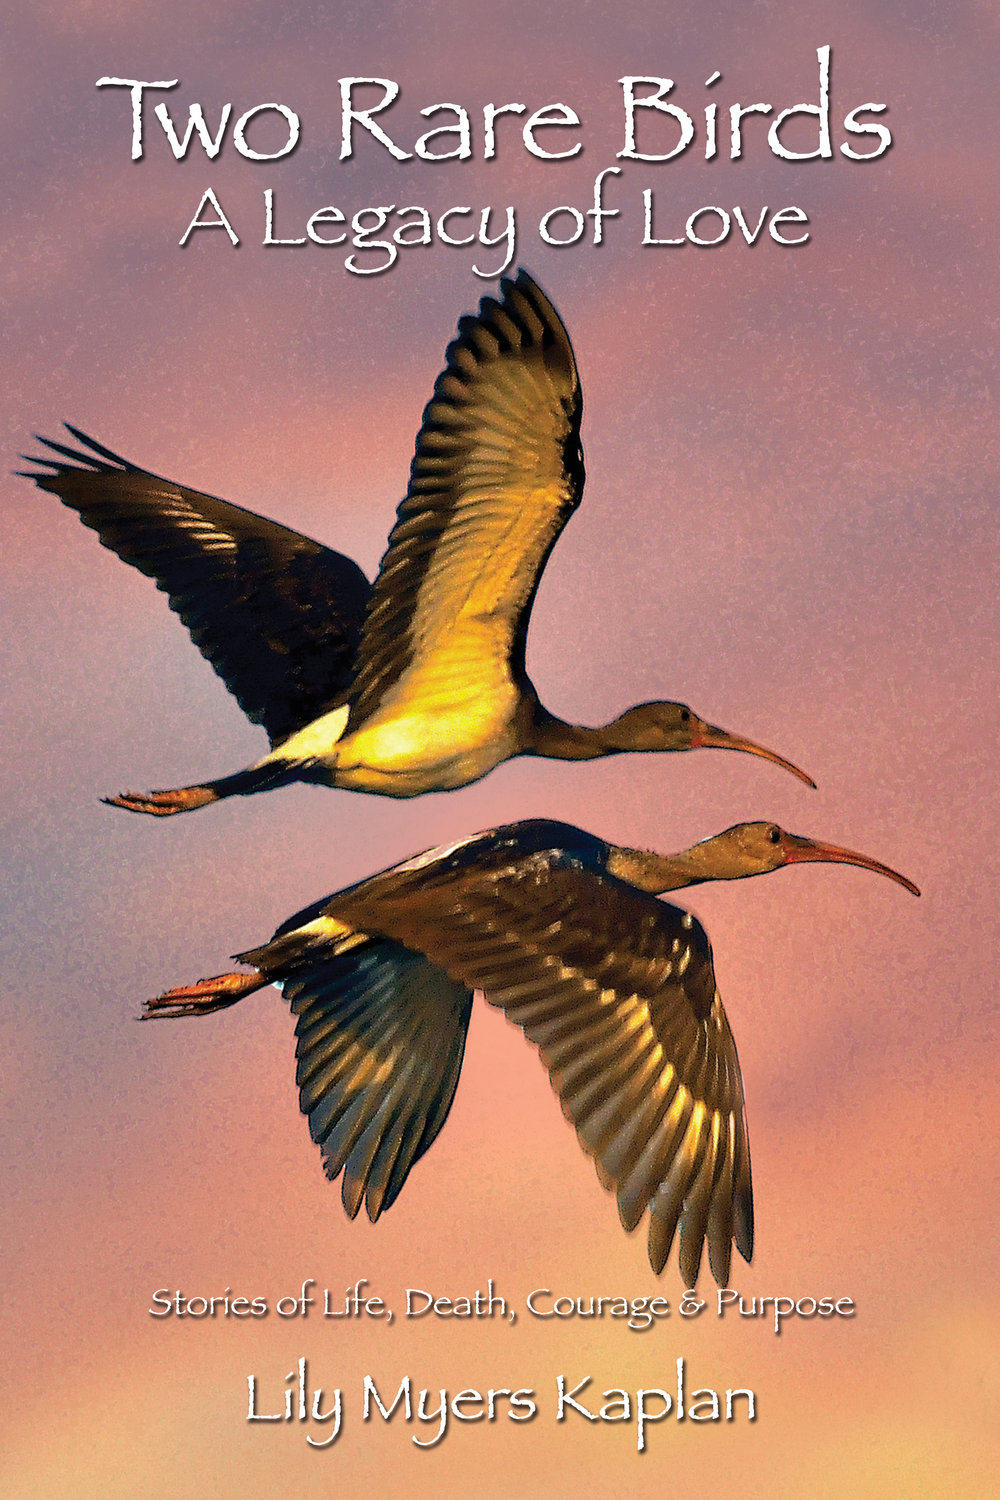 Click HERE to purchase Two Rare Birds on Amazon.com